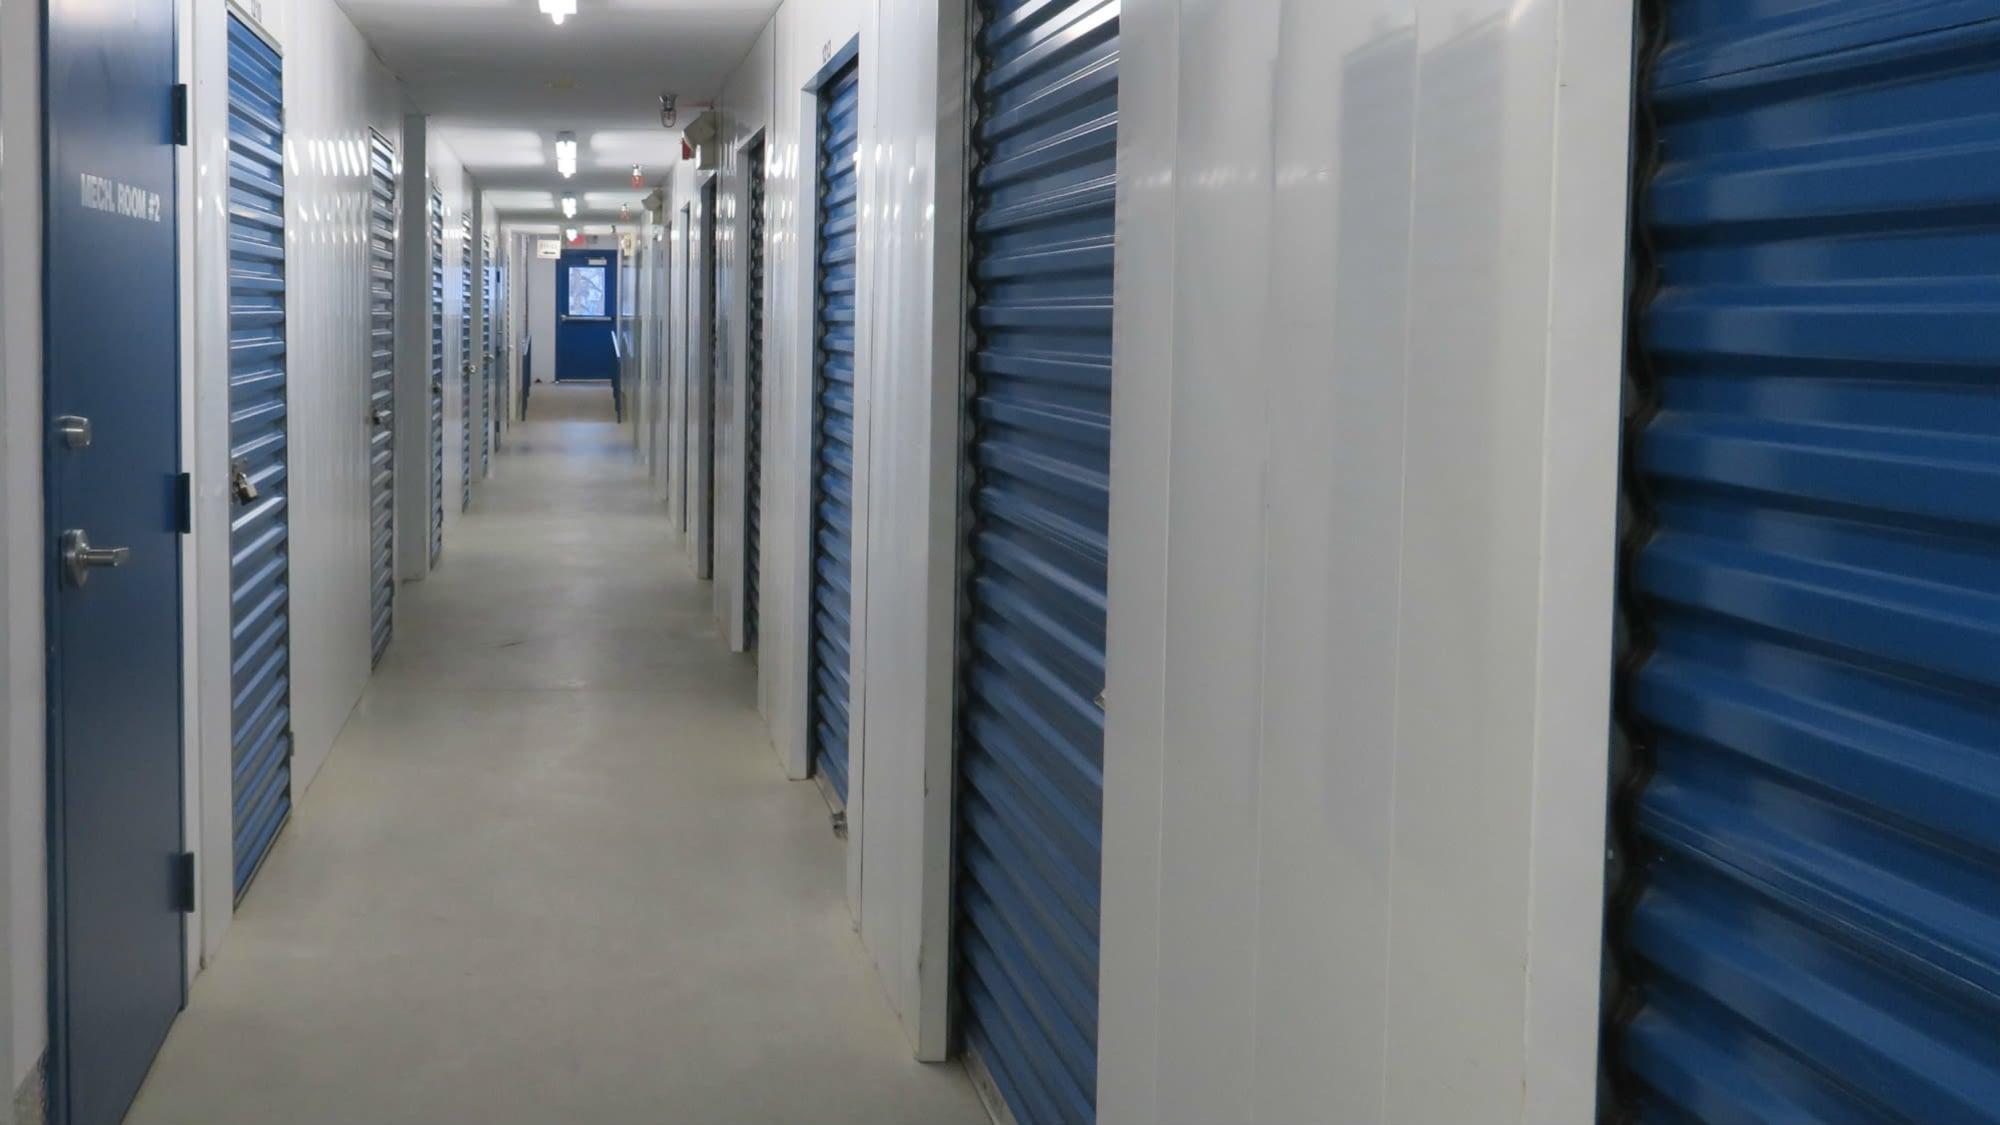 Interior units at Self Storage Plus in Gambrills, MD